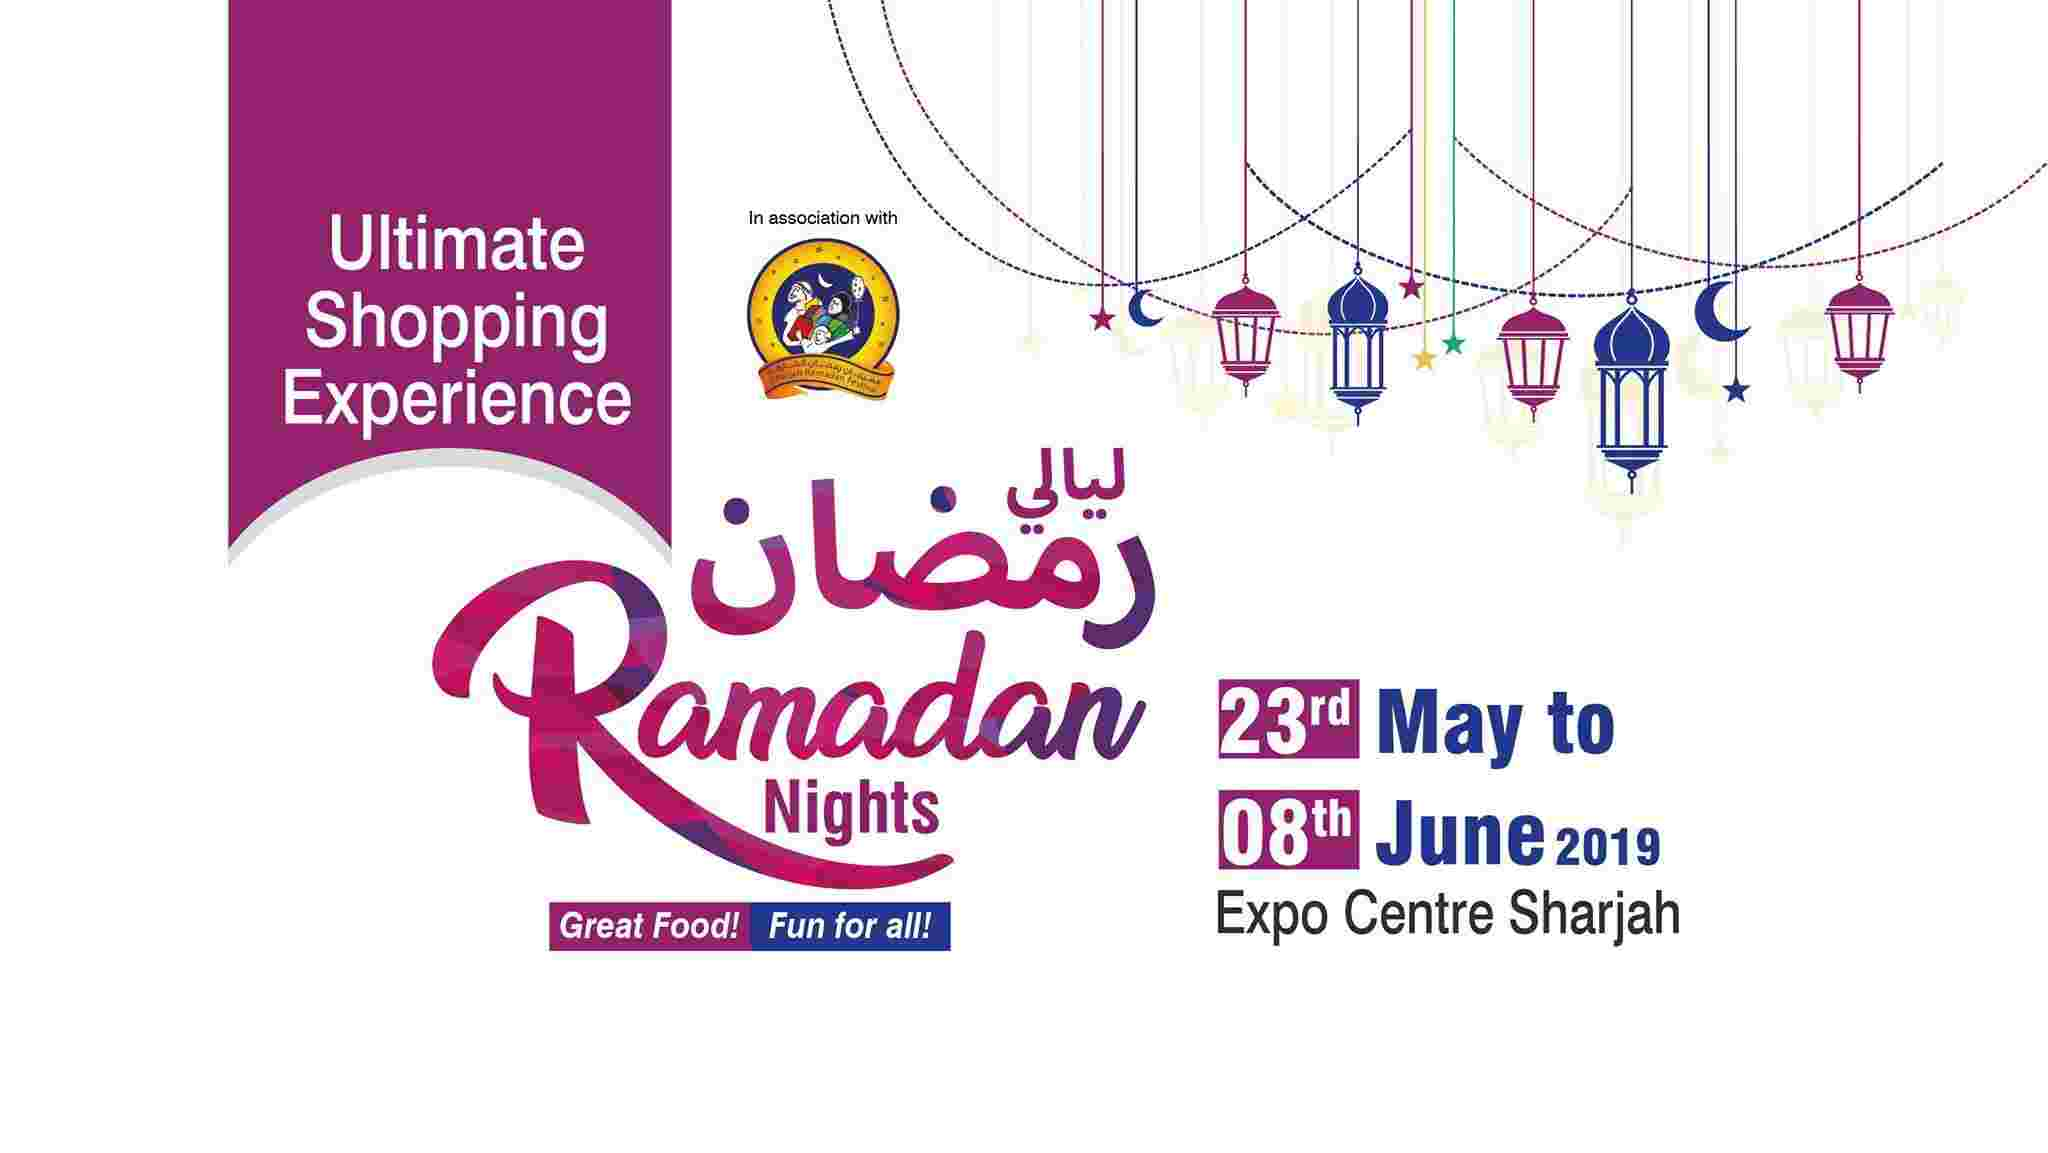 Ramadan Nights at Expo Centre Sharjah 2019